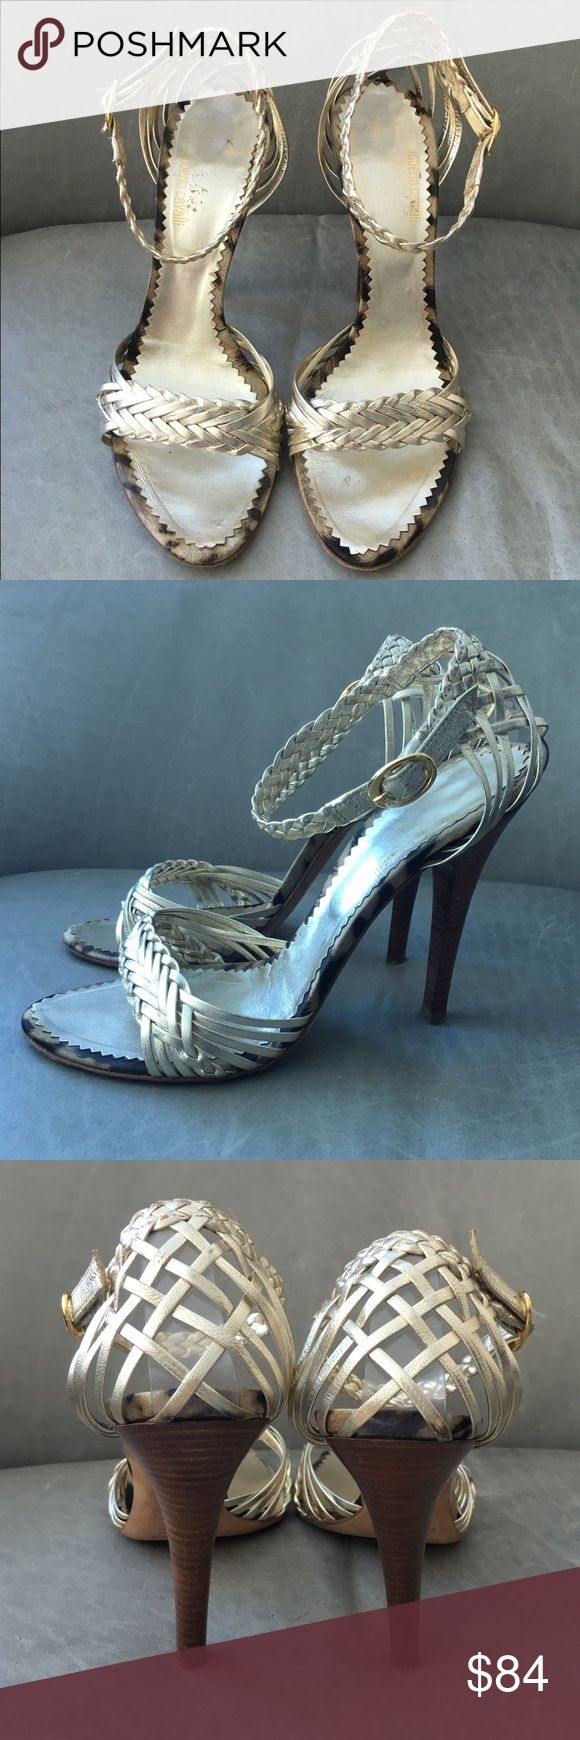 ROBERTO CAVALLI Gold Woven Strappy Heeled Sandals True to size. Braided straps and basket heels/vamps. Animal print trim on soles. Very comfortable and versatile style. Buckle ankle closure. Slight wear on insoles and moderate wear on soles. Roberto Cavalli Shoes Heels